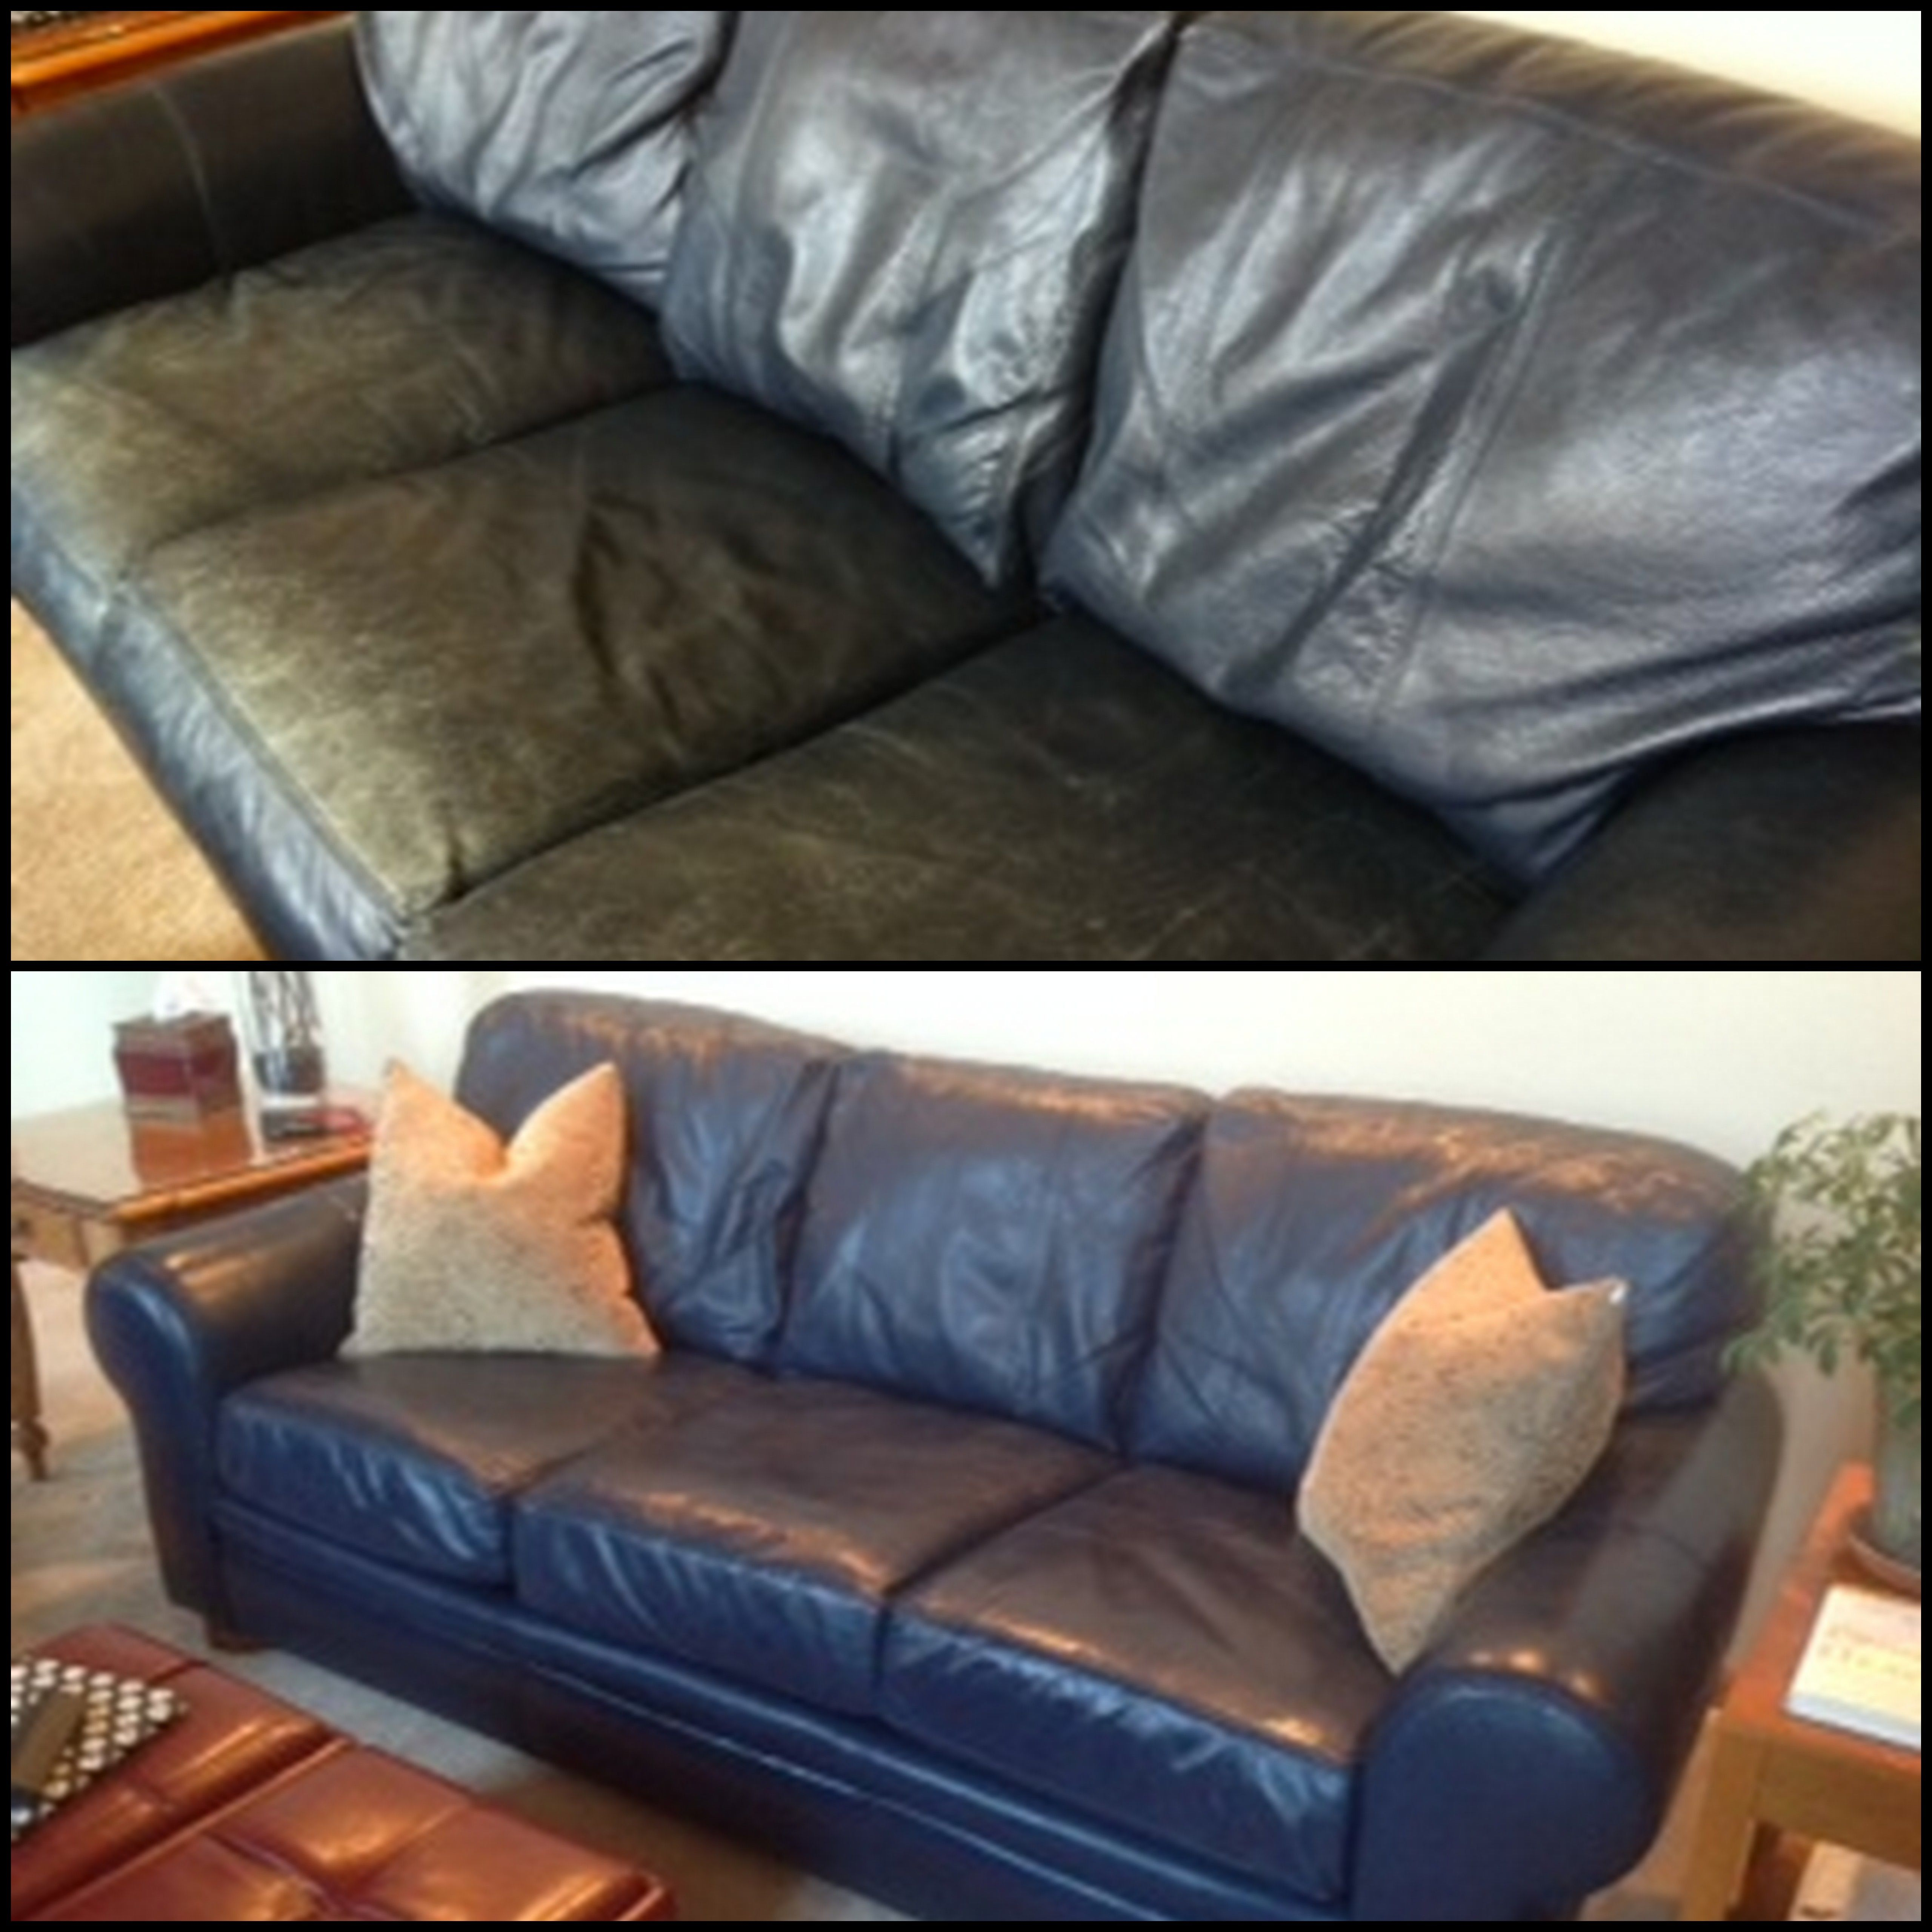 Stephen Used Midnight Blue Blue Leather Couch Leather Couch Navy Blue Leather Couch